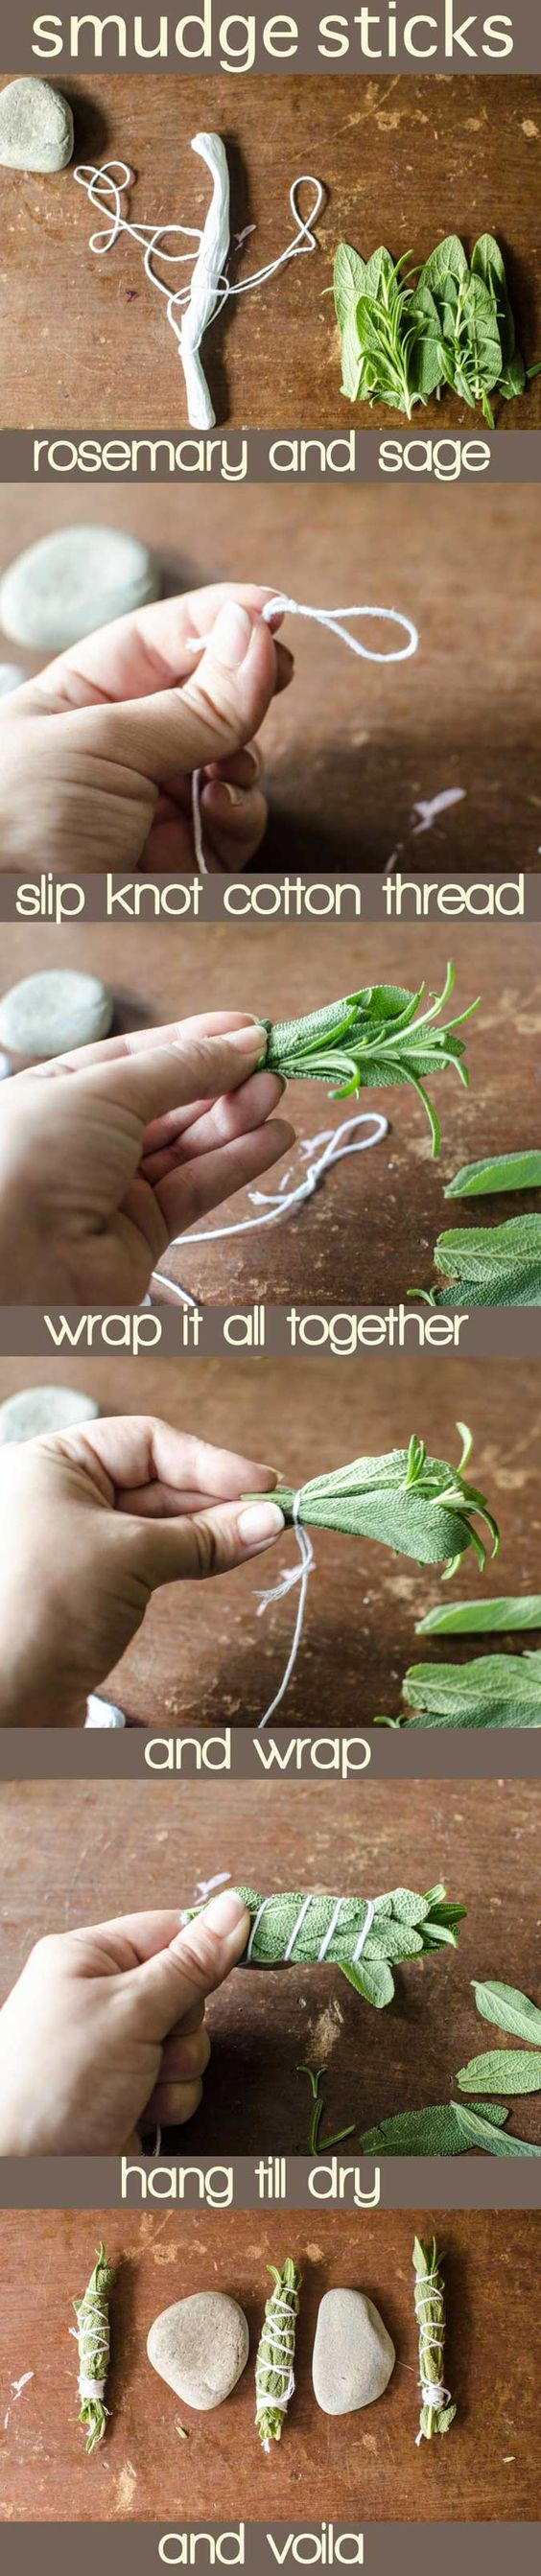 DIY sage bundles/ smudge sticks. Make several to give keep and use when you've had bad company or need to sage a new home.